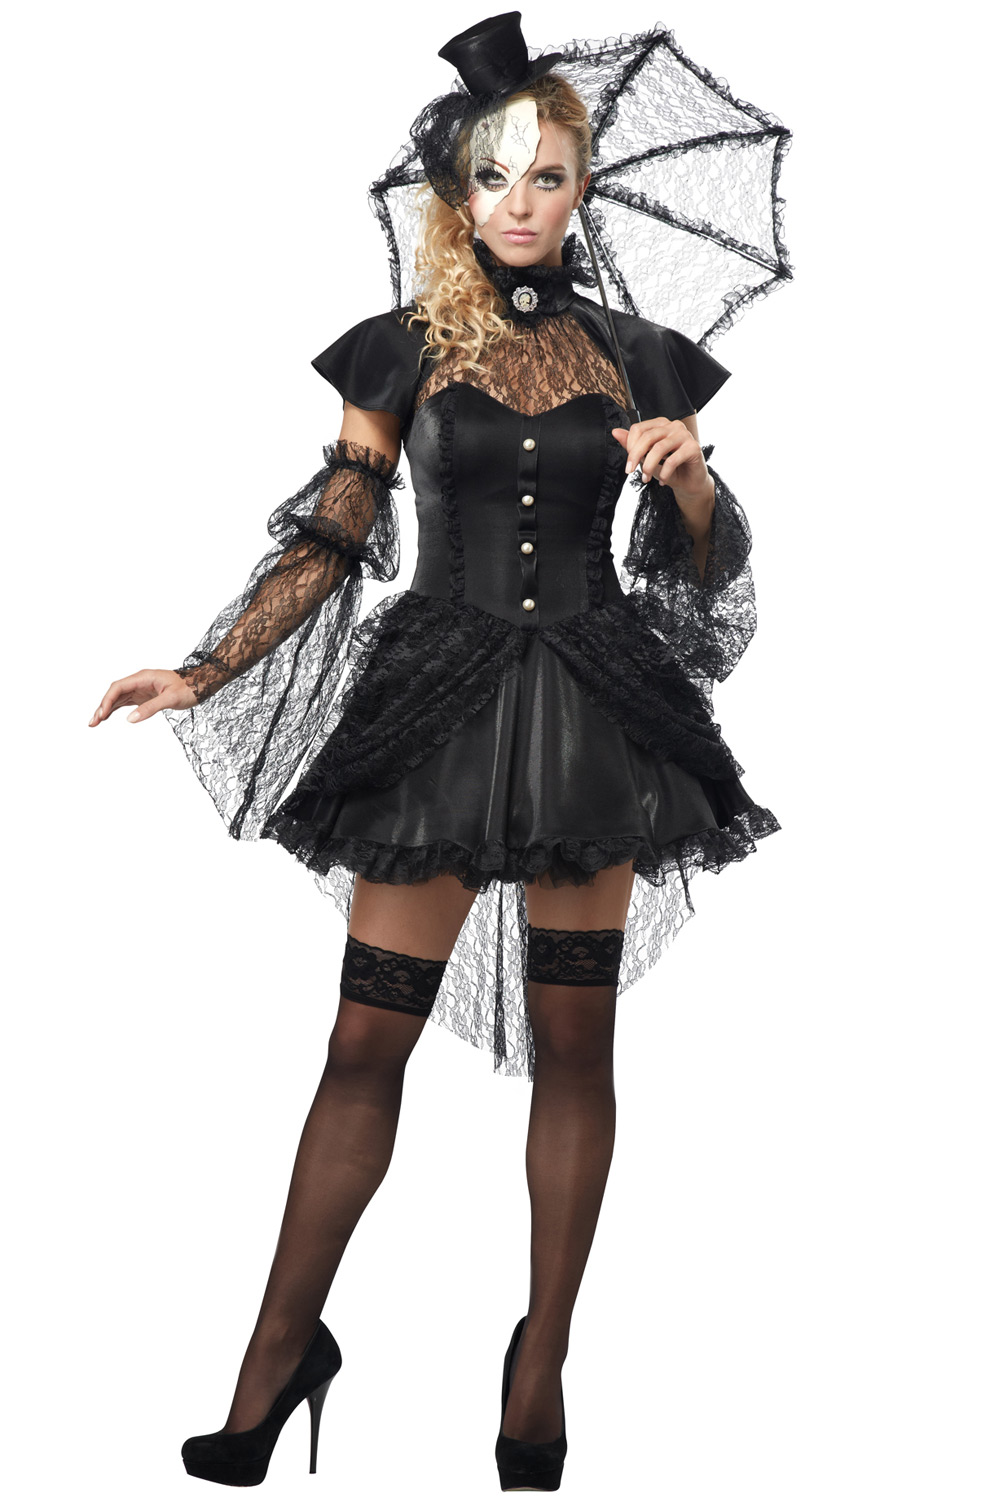 Porcelain Doll Costumes Adults Victorian Doll Adult Costume